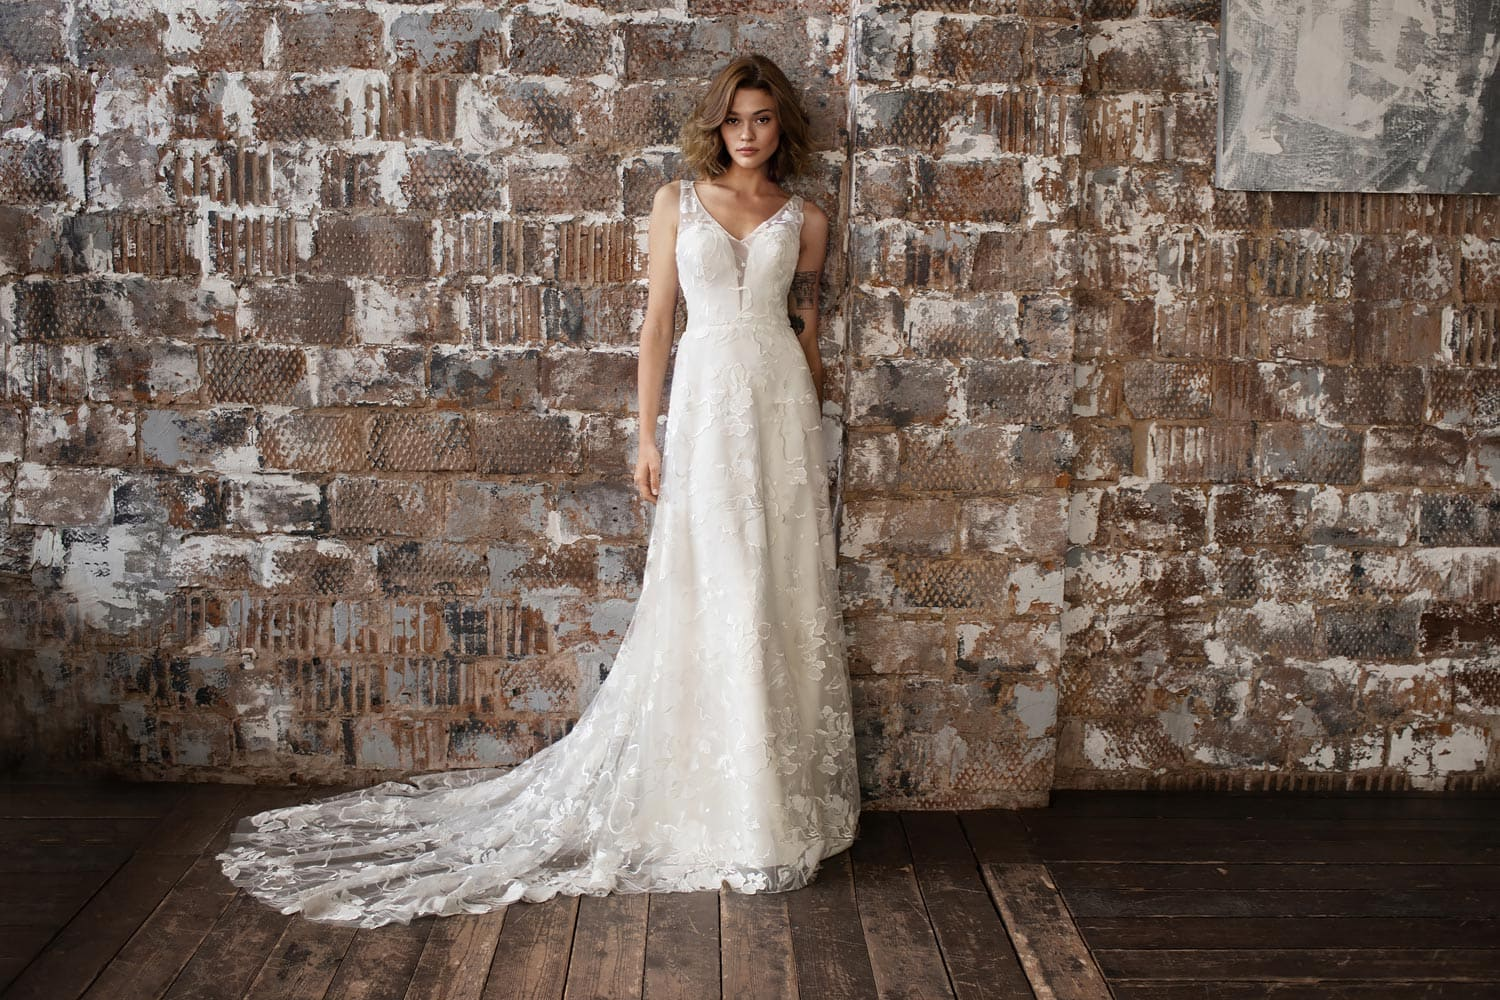 boho wedding dress uk boho wedding dresses london boho wedding dress shops near me wedding dress 12